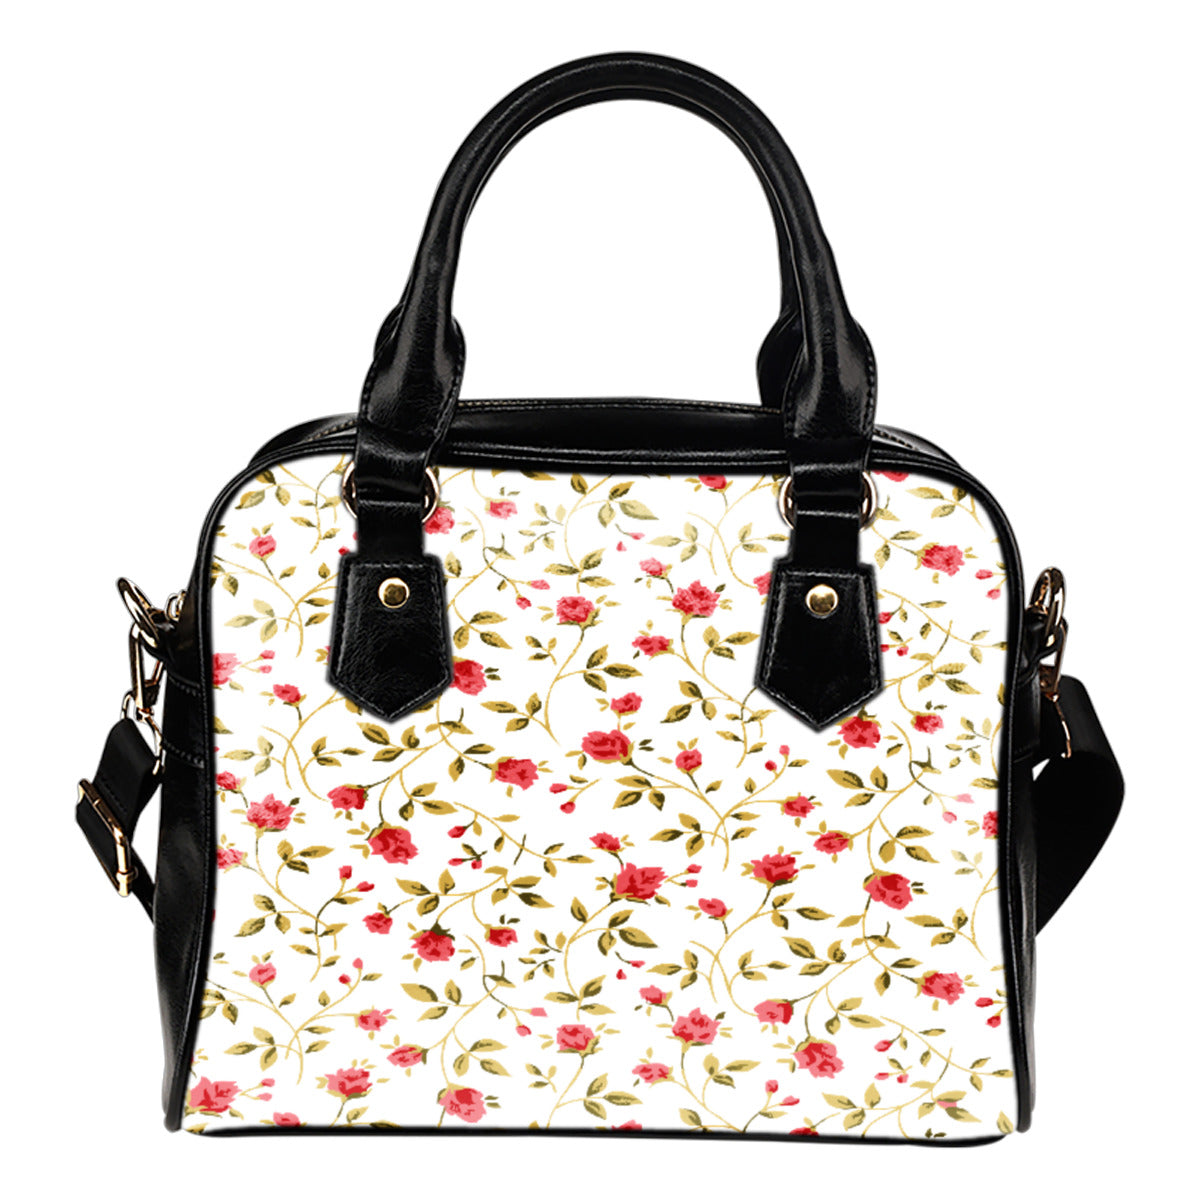 Rambling Roses Shoulder Bag